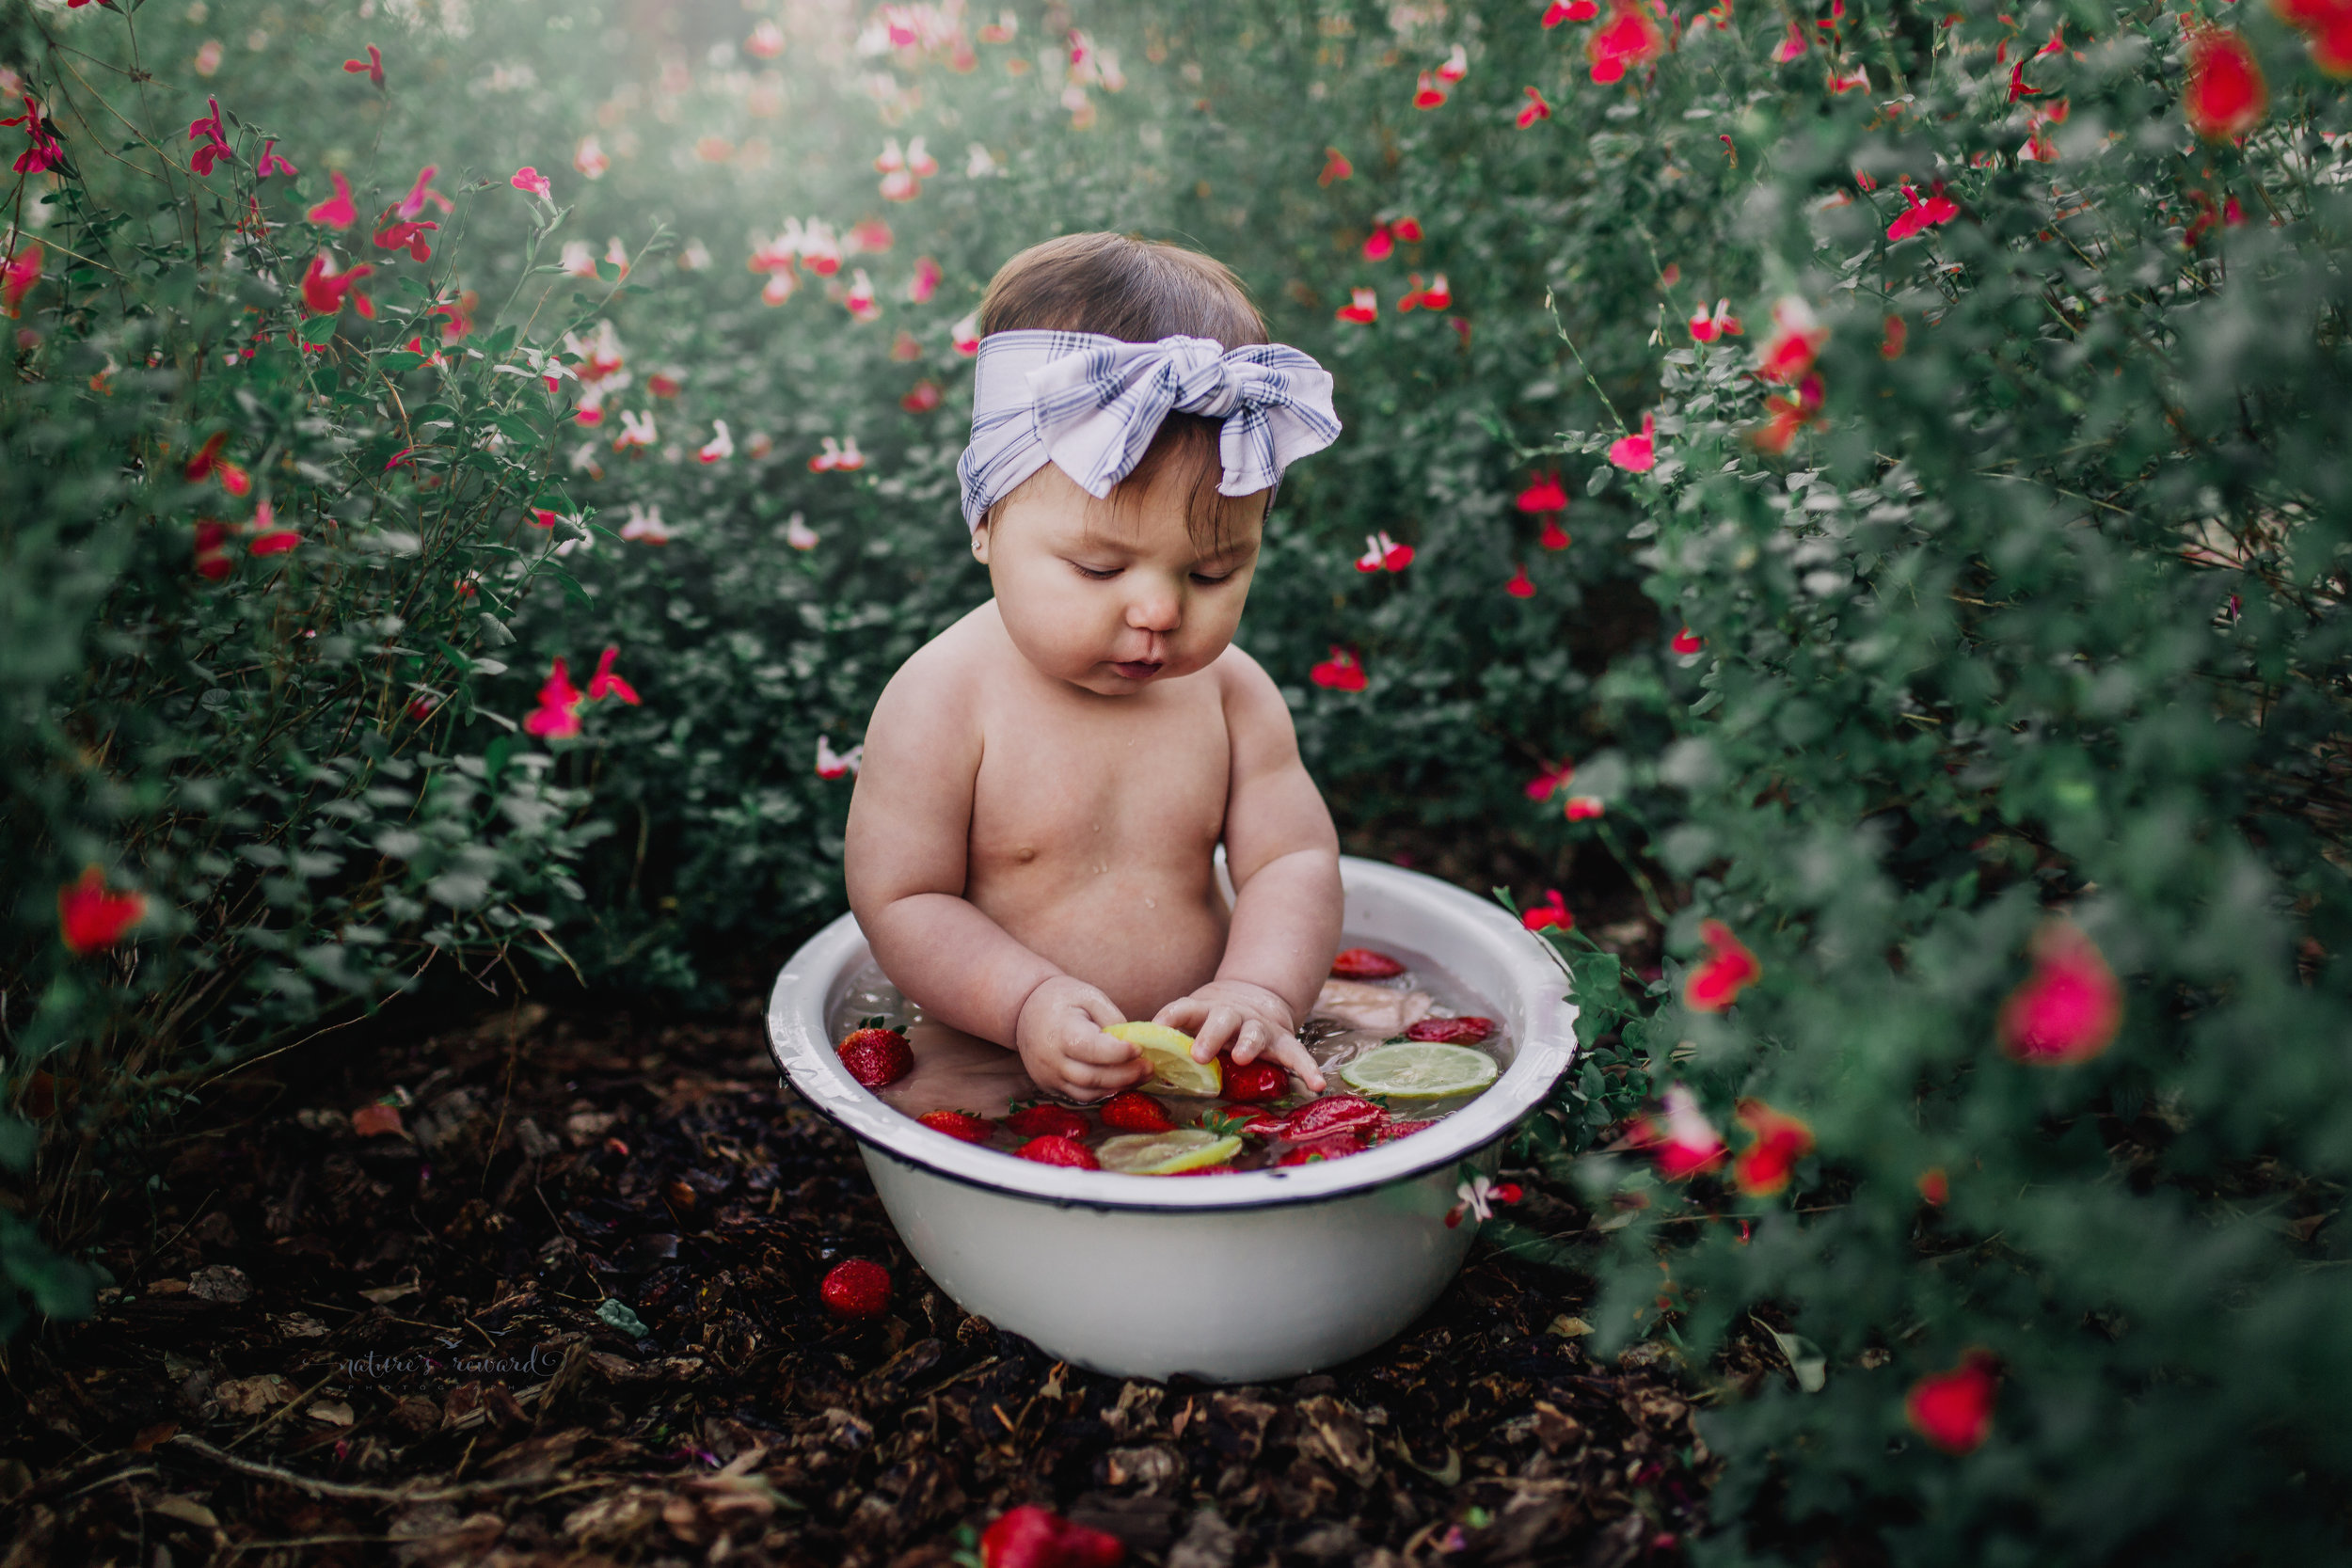 6 month old little girl during her sitter session taking a fruit bath of strawberries and lemons in garden of kissy lips flowers- a portrait by Nature's Reward Photography